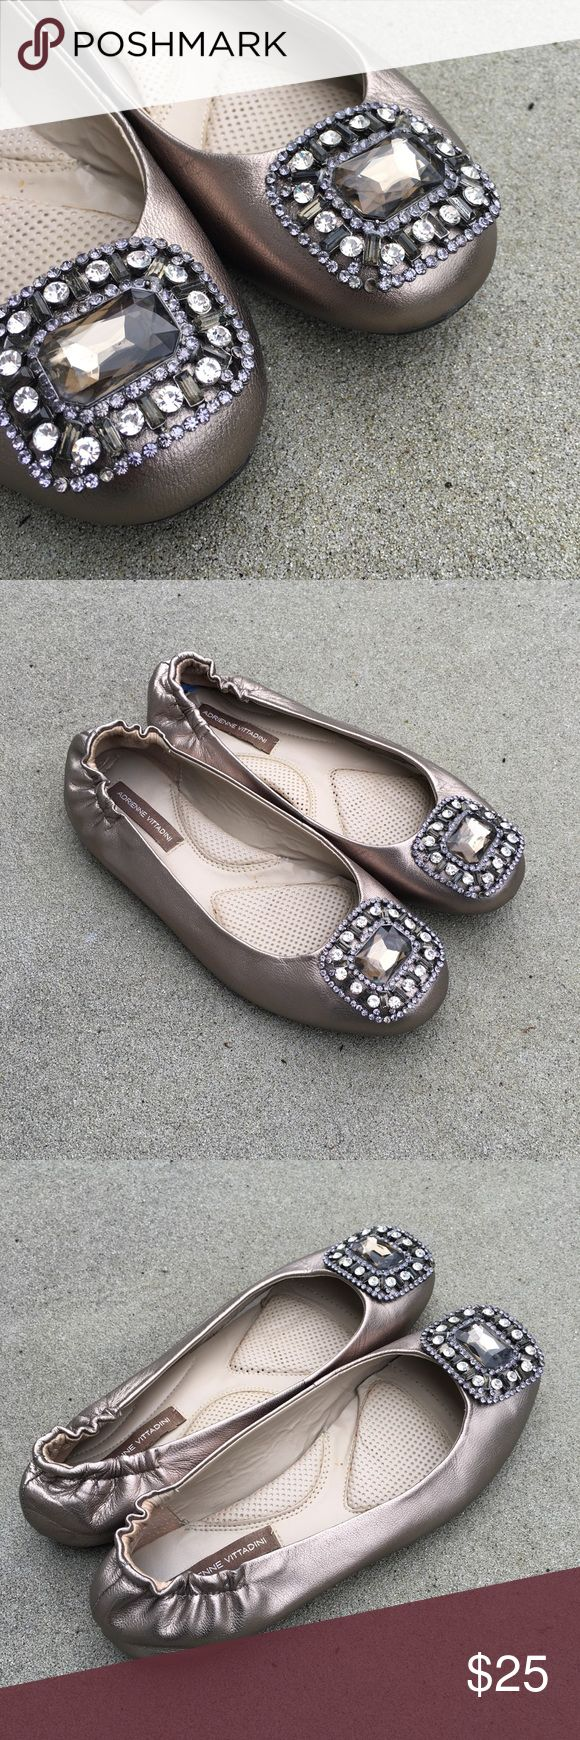 Adrienne Vittadini Jeweled Ballet Flats Adrienne Vittadini metallic champagne jeweled leather ballet flats. Preowned and show some signs of wear, missing one small jewel see pictures.  Size 6.5 Adrienne Vittadini Shoes Flats & Loafers